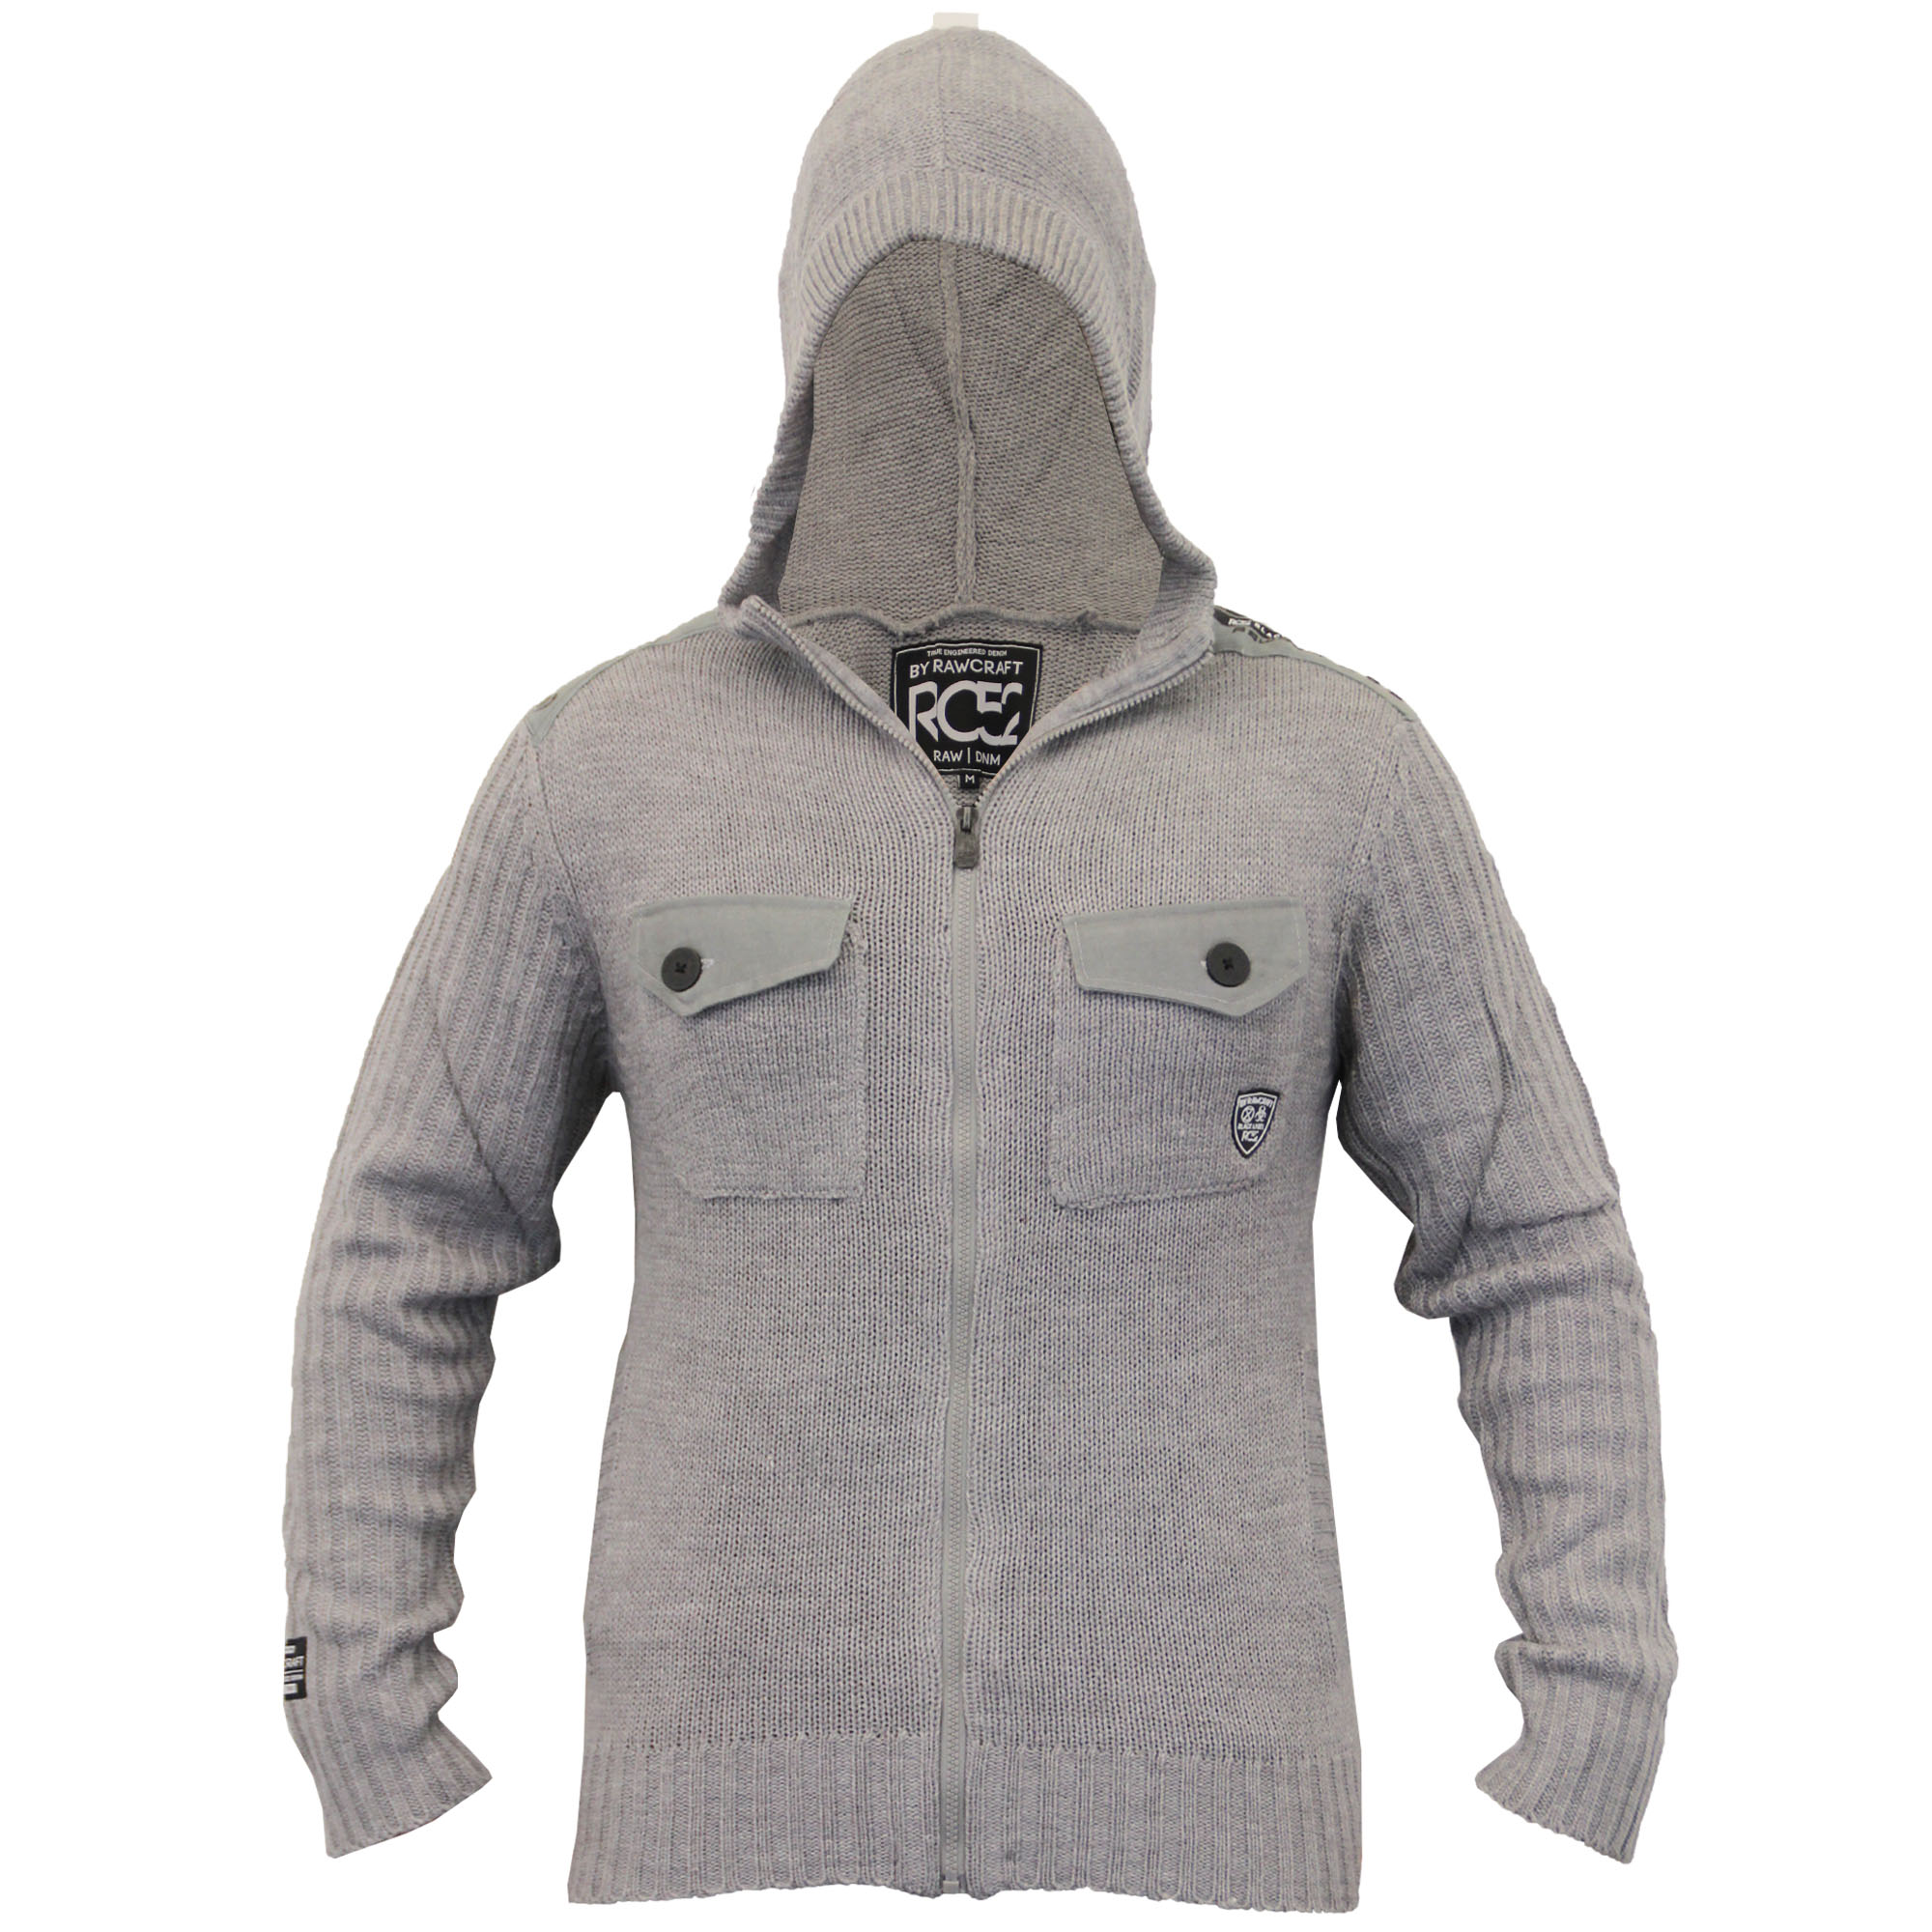 Mens Cardigan Rawcraft Hooded Top Knitted Jumper Military ...